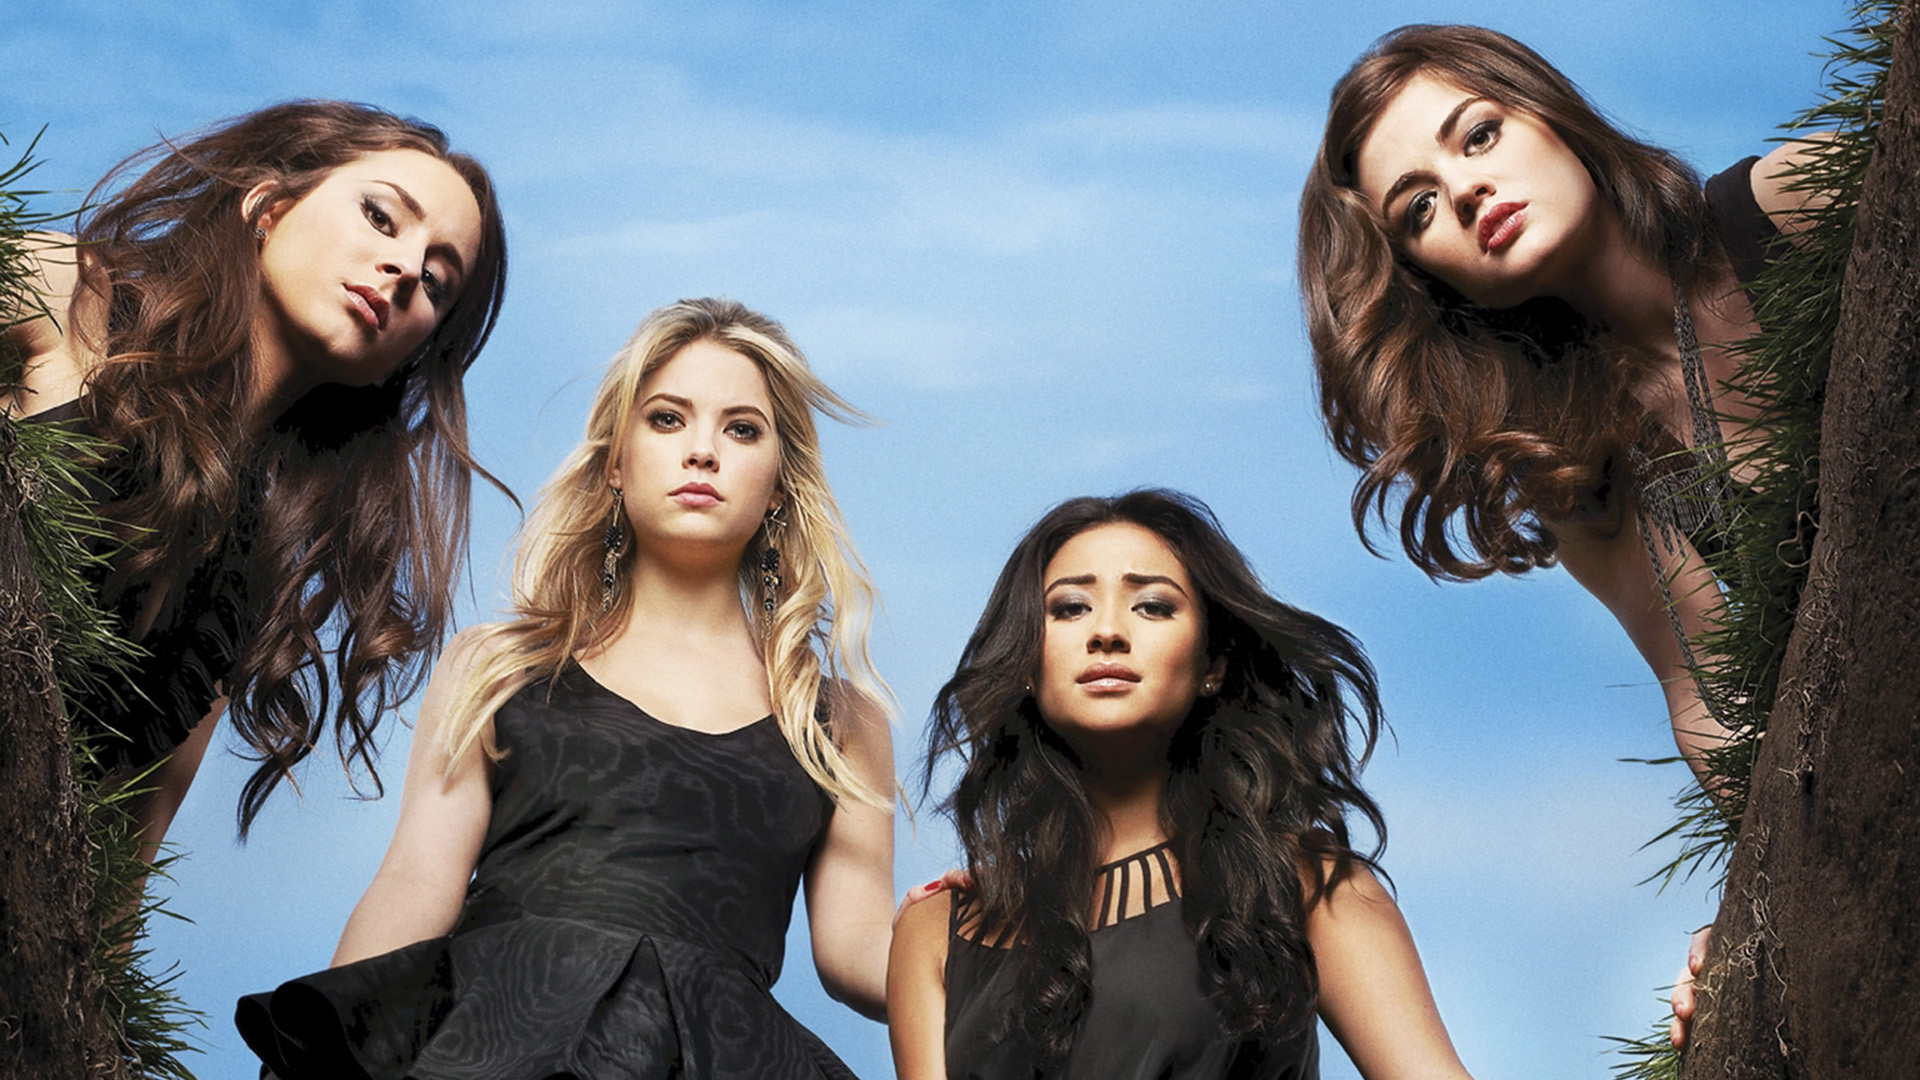 Images posters wallpapers de Pretty Little Liars 1920x1080